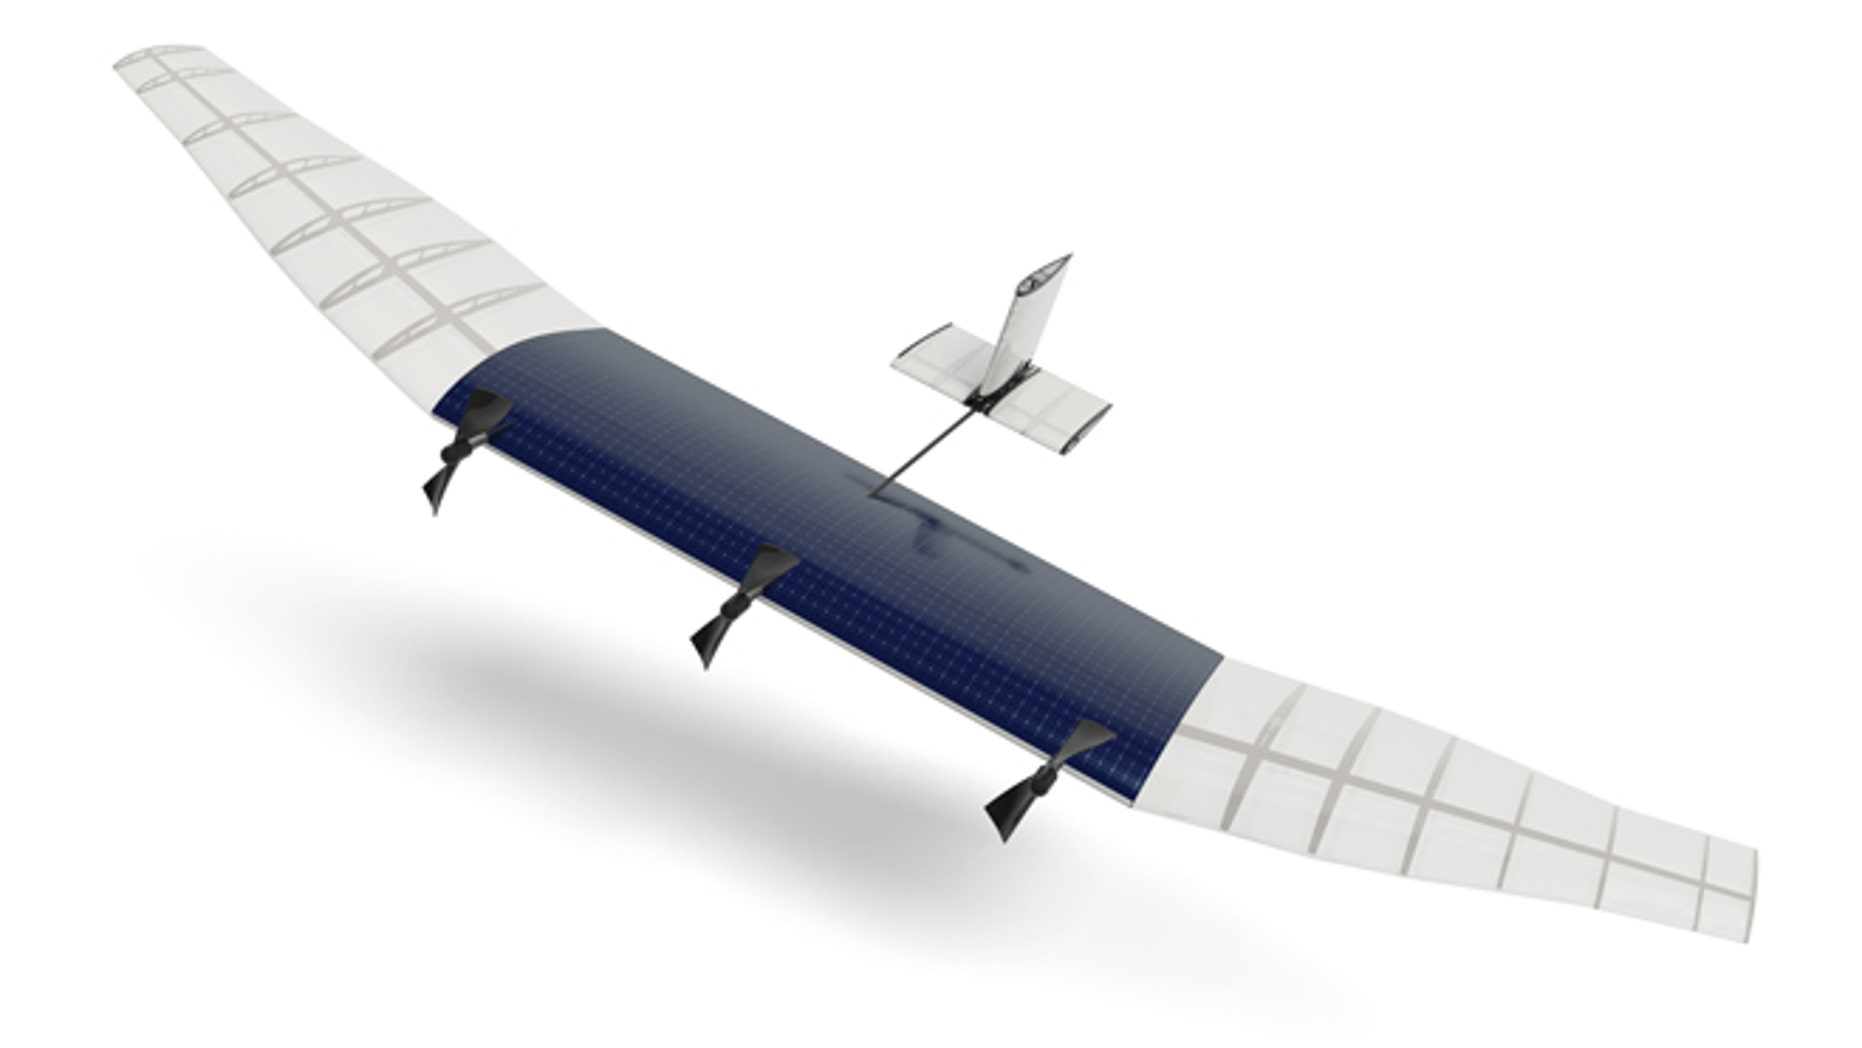 Facebook is giving more details about its effort to connect remote parts of the world to the Internet  and it involves drones, lasers and satellites.